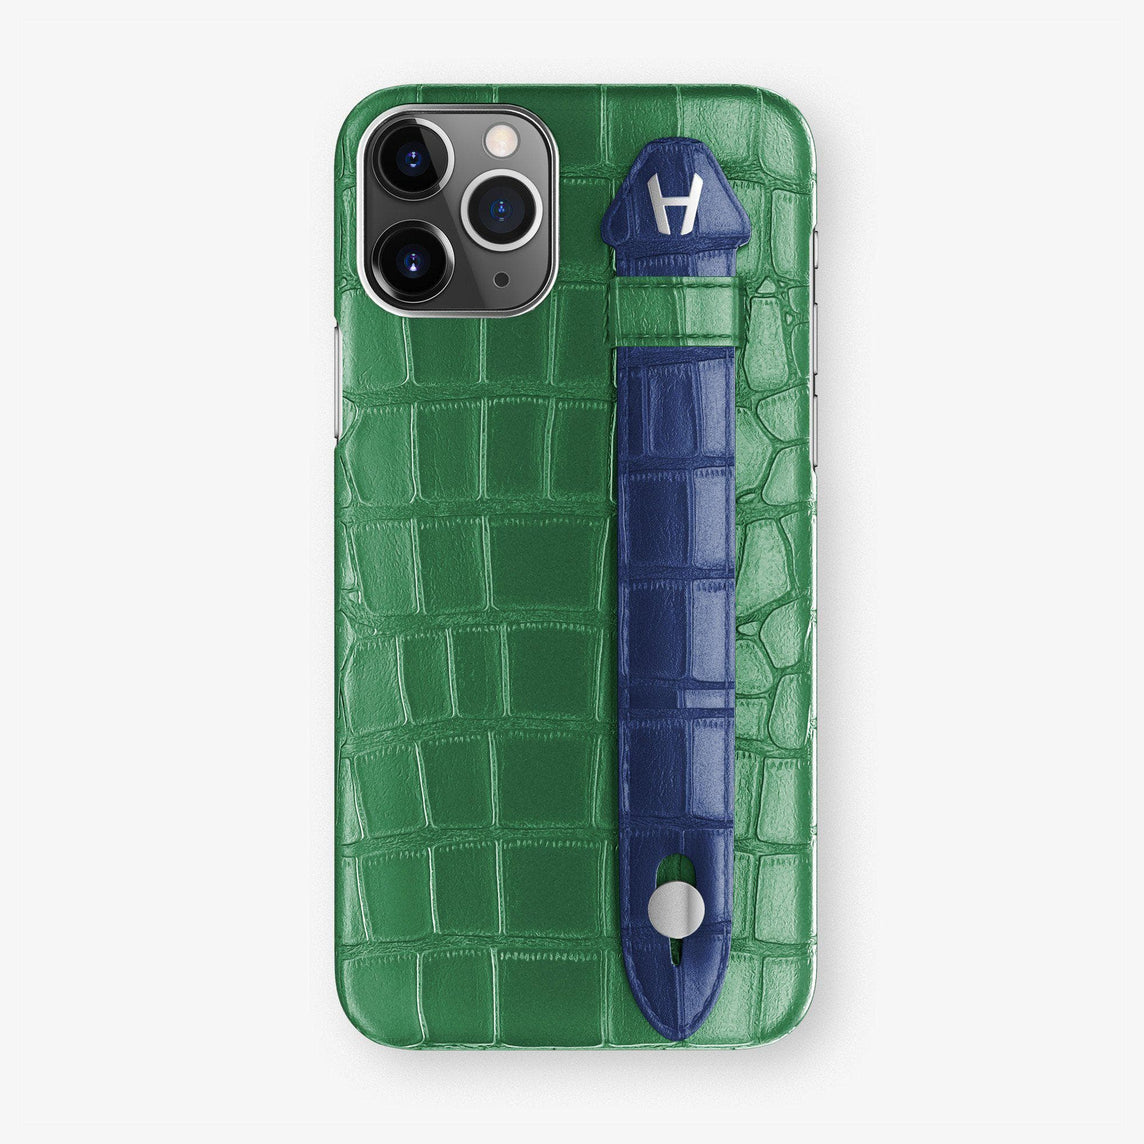 Alligator Finger Case iPhone 11 Pro | Green Emerald/Navy Blue - Stainless Steel